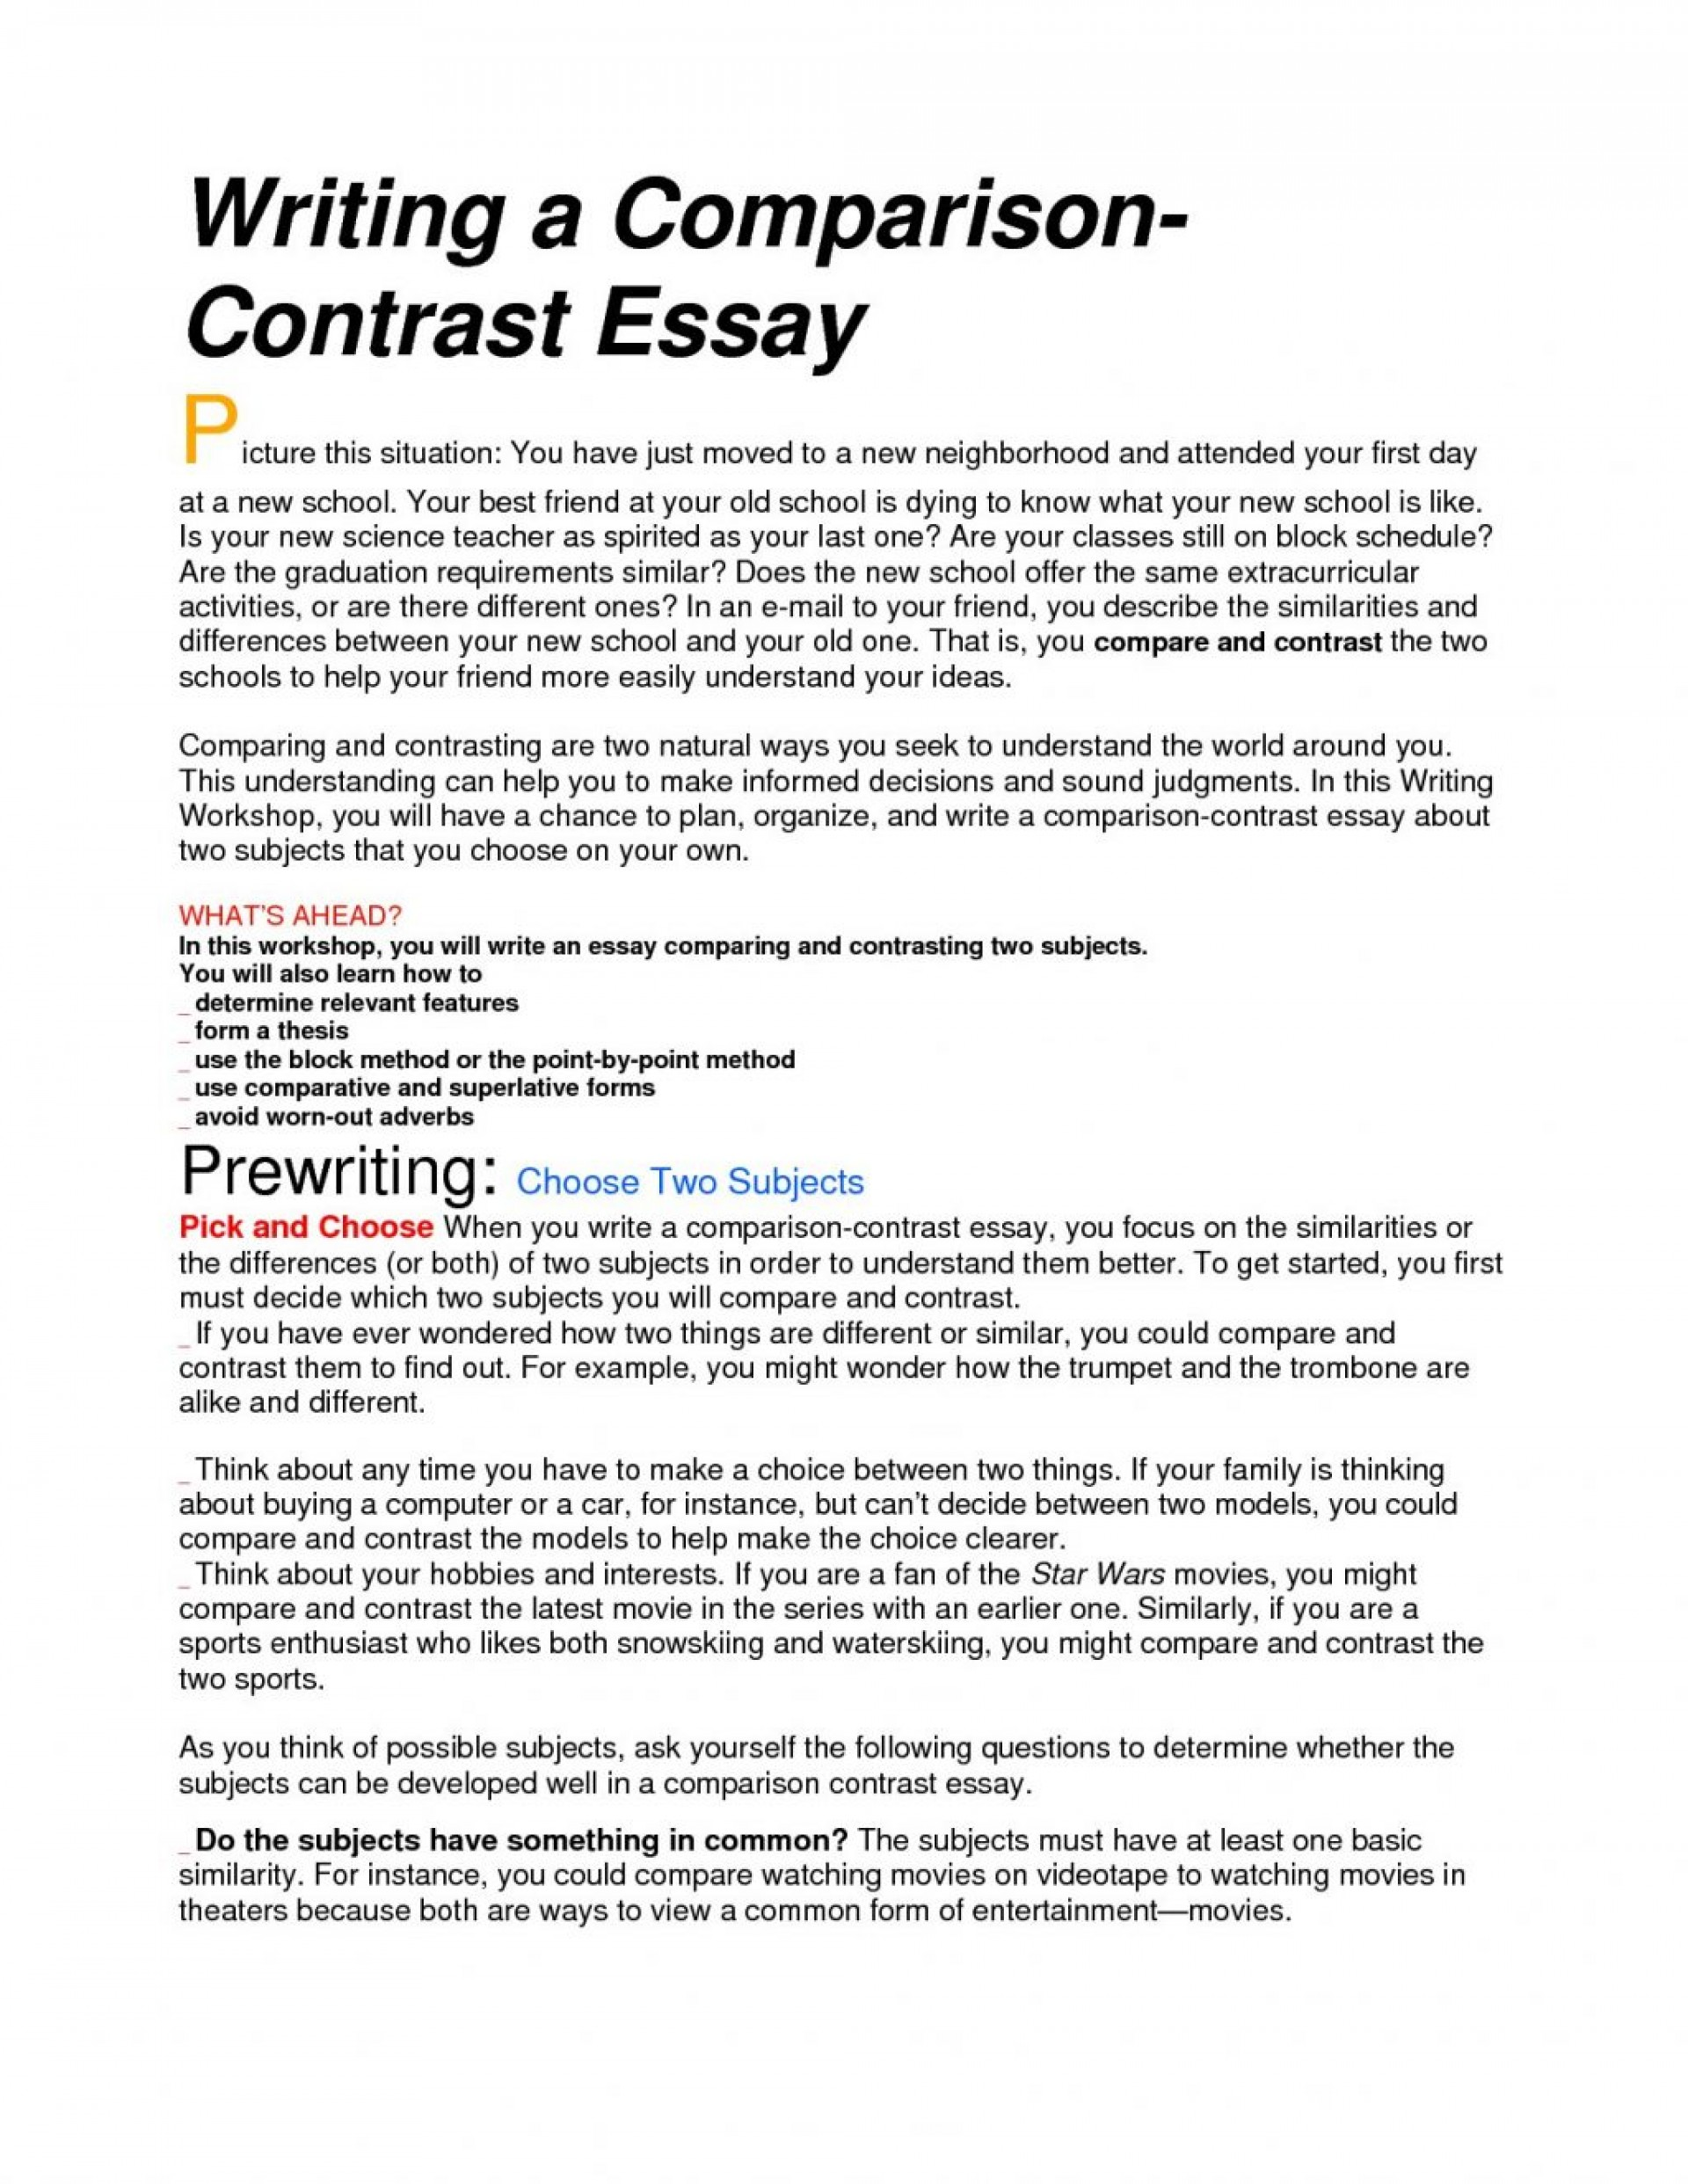 017 Good Compare And Contrast Essay Topics Sythesis Of Nanopolymeric Cheapsis Statement Proofreading For High Schoolents Photo Comparison Essays Esl How To Teach Exceptional Elementary Students In The Medical Field 1920